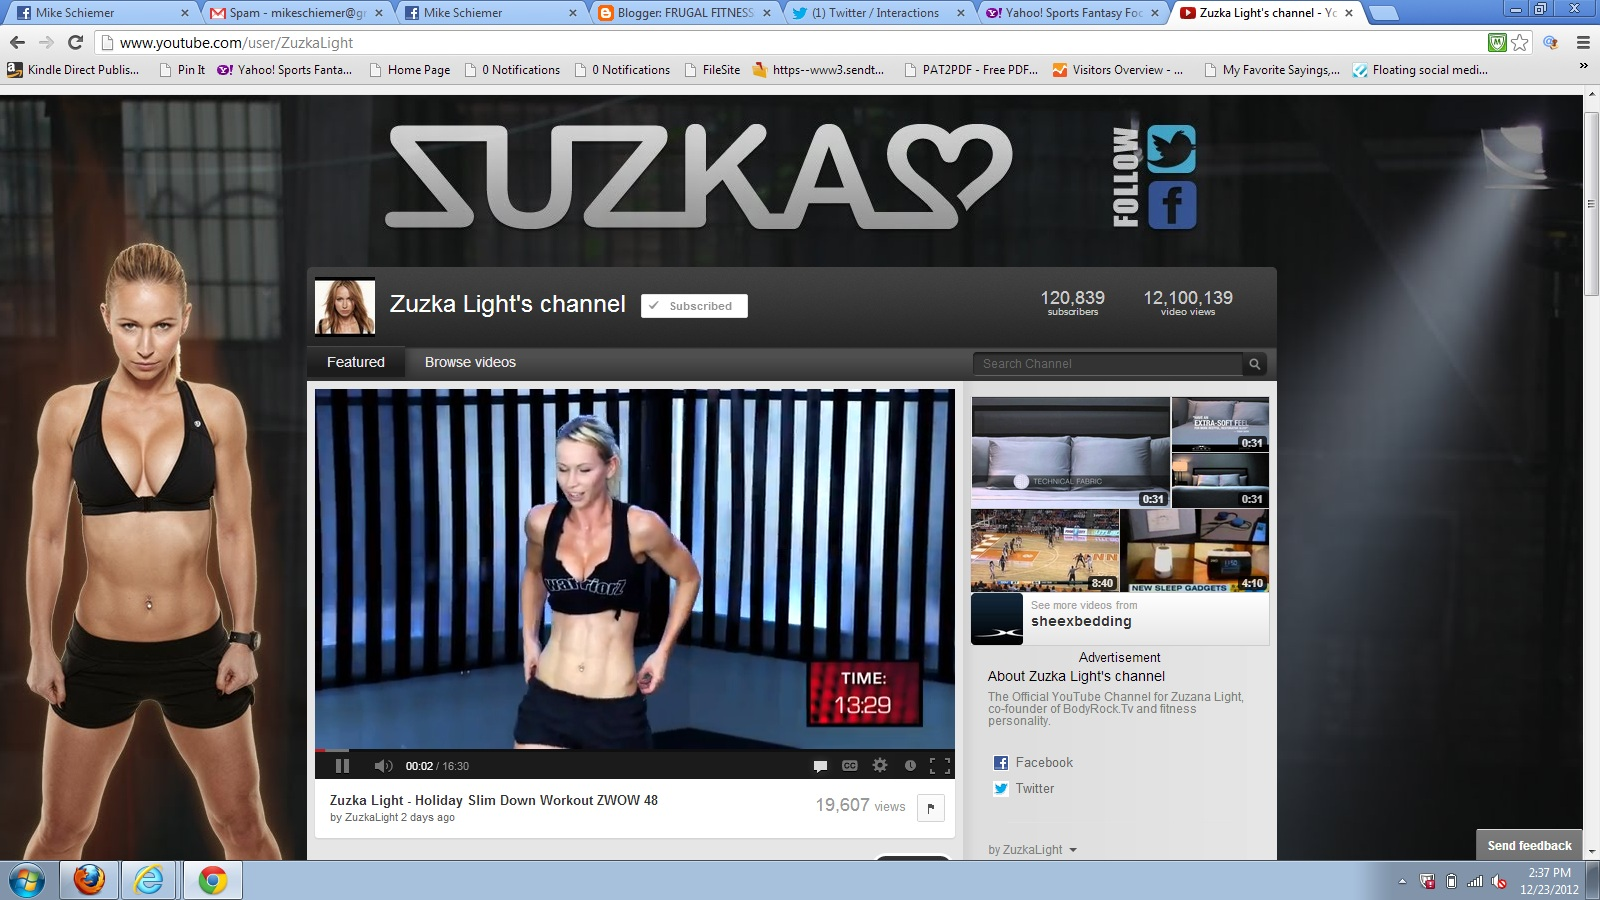 Zuzana+Light+Zuzka+Light+Fitness+YouTube+Adult+Filmstar+Pornstar+Charlie+James+Butt+Six+Pack+Abs+Buns+of+Steel Funny and sexy gay cartoon pics for your pleasure.   Picture 10